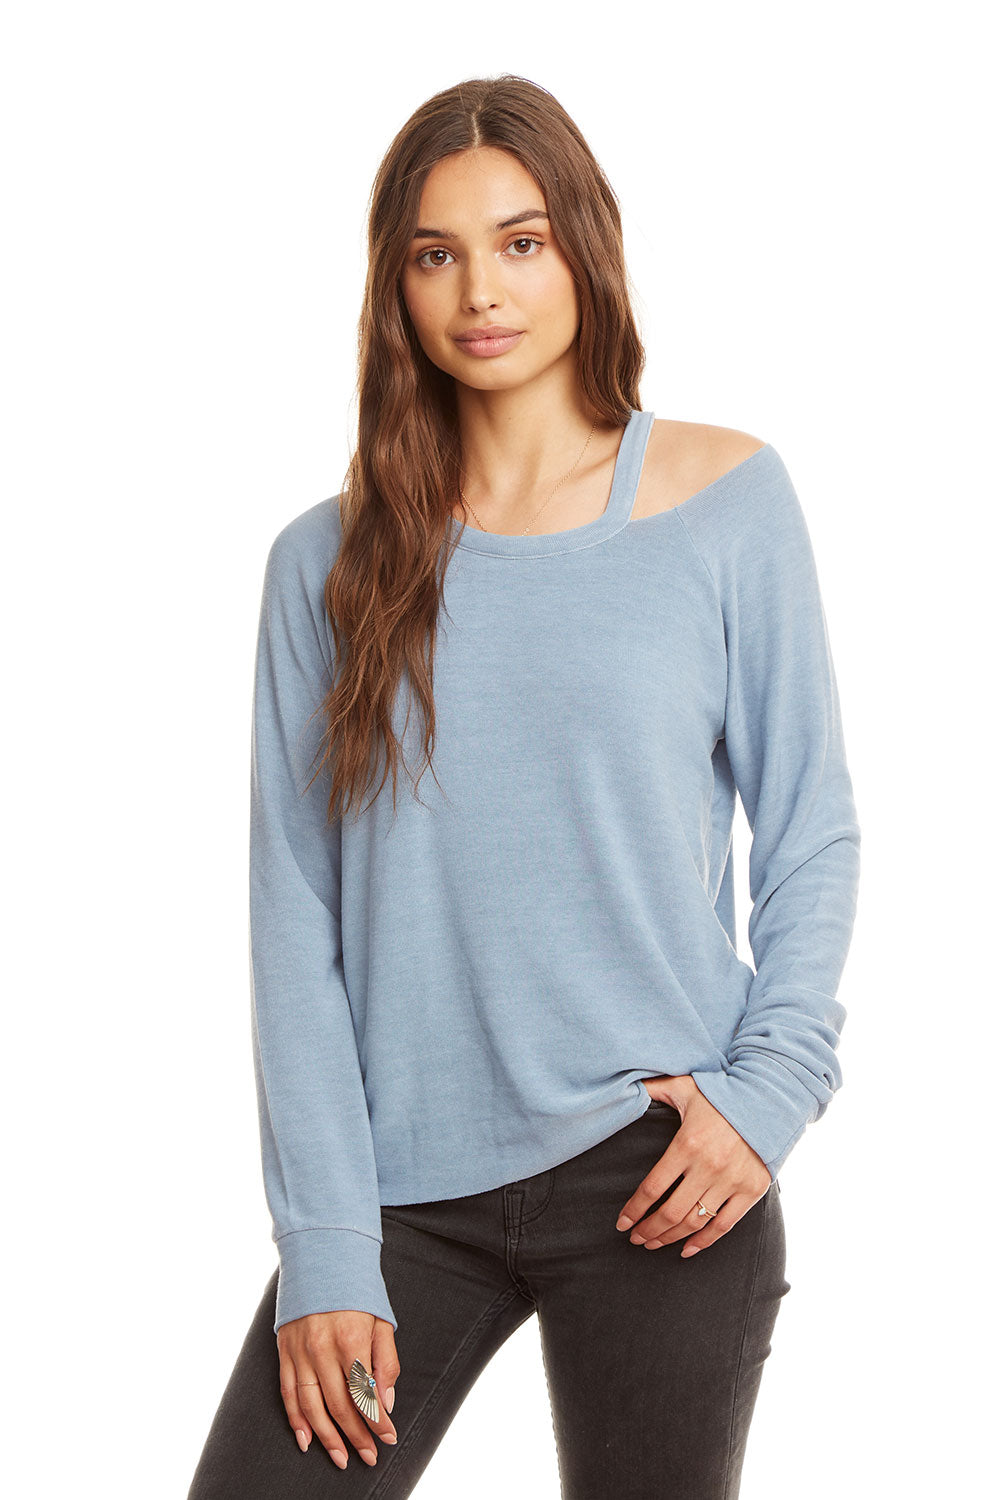 0eed6555d Cozy Knit L/S Raglan Vented Neck Pullover, WOMENS, chaserbrand.com,